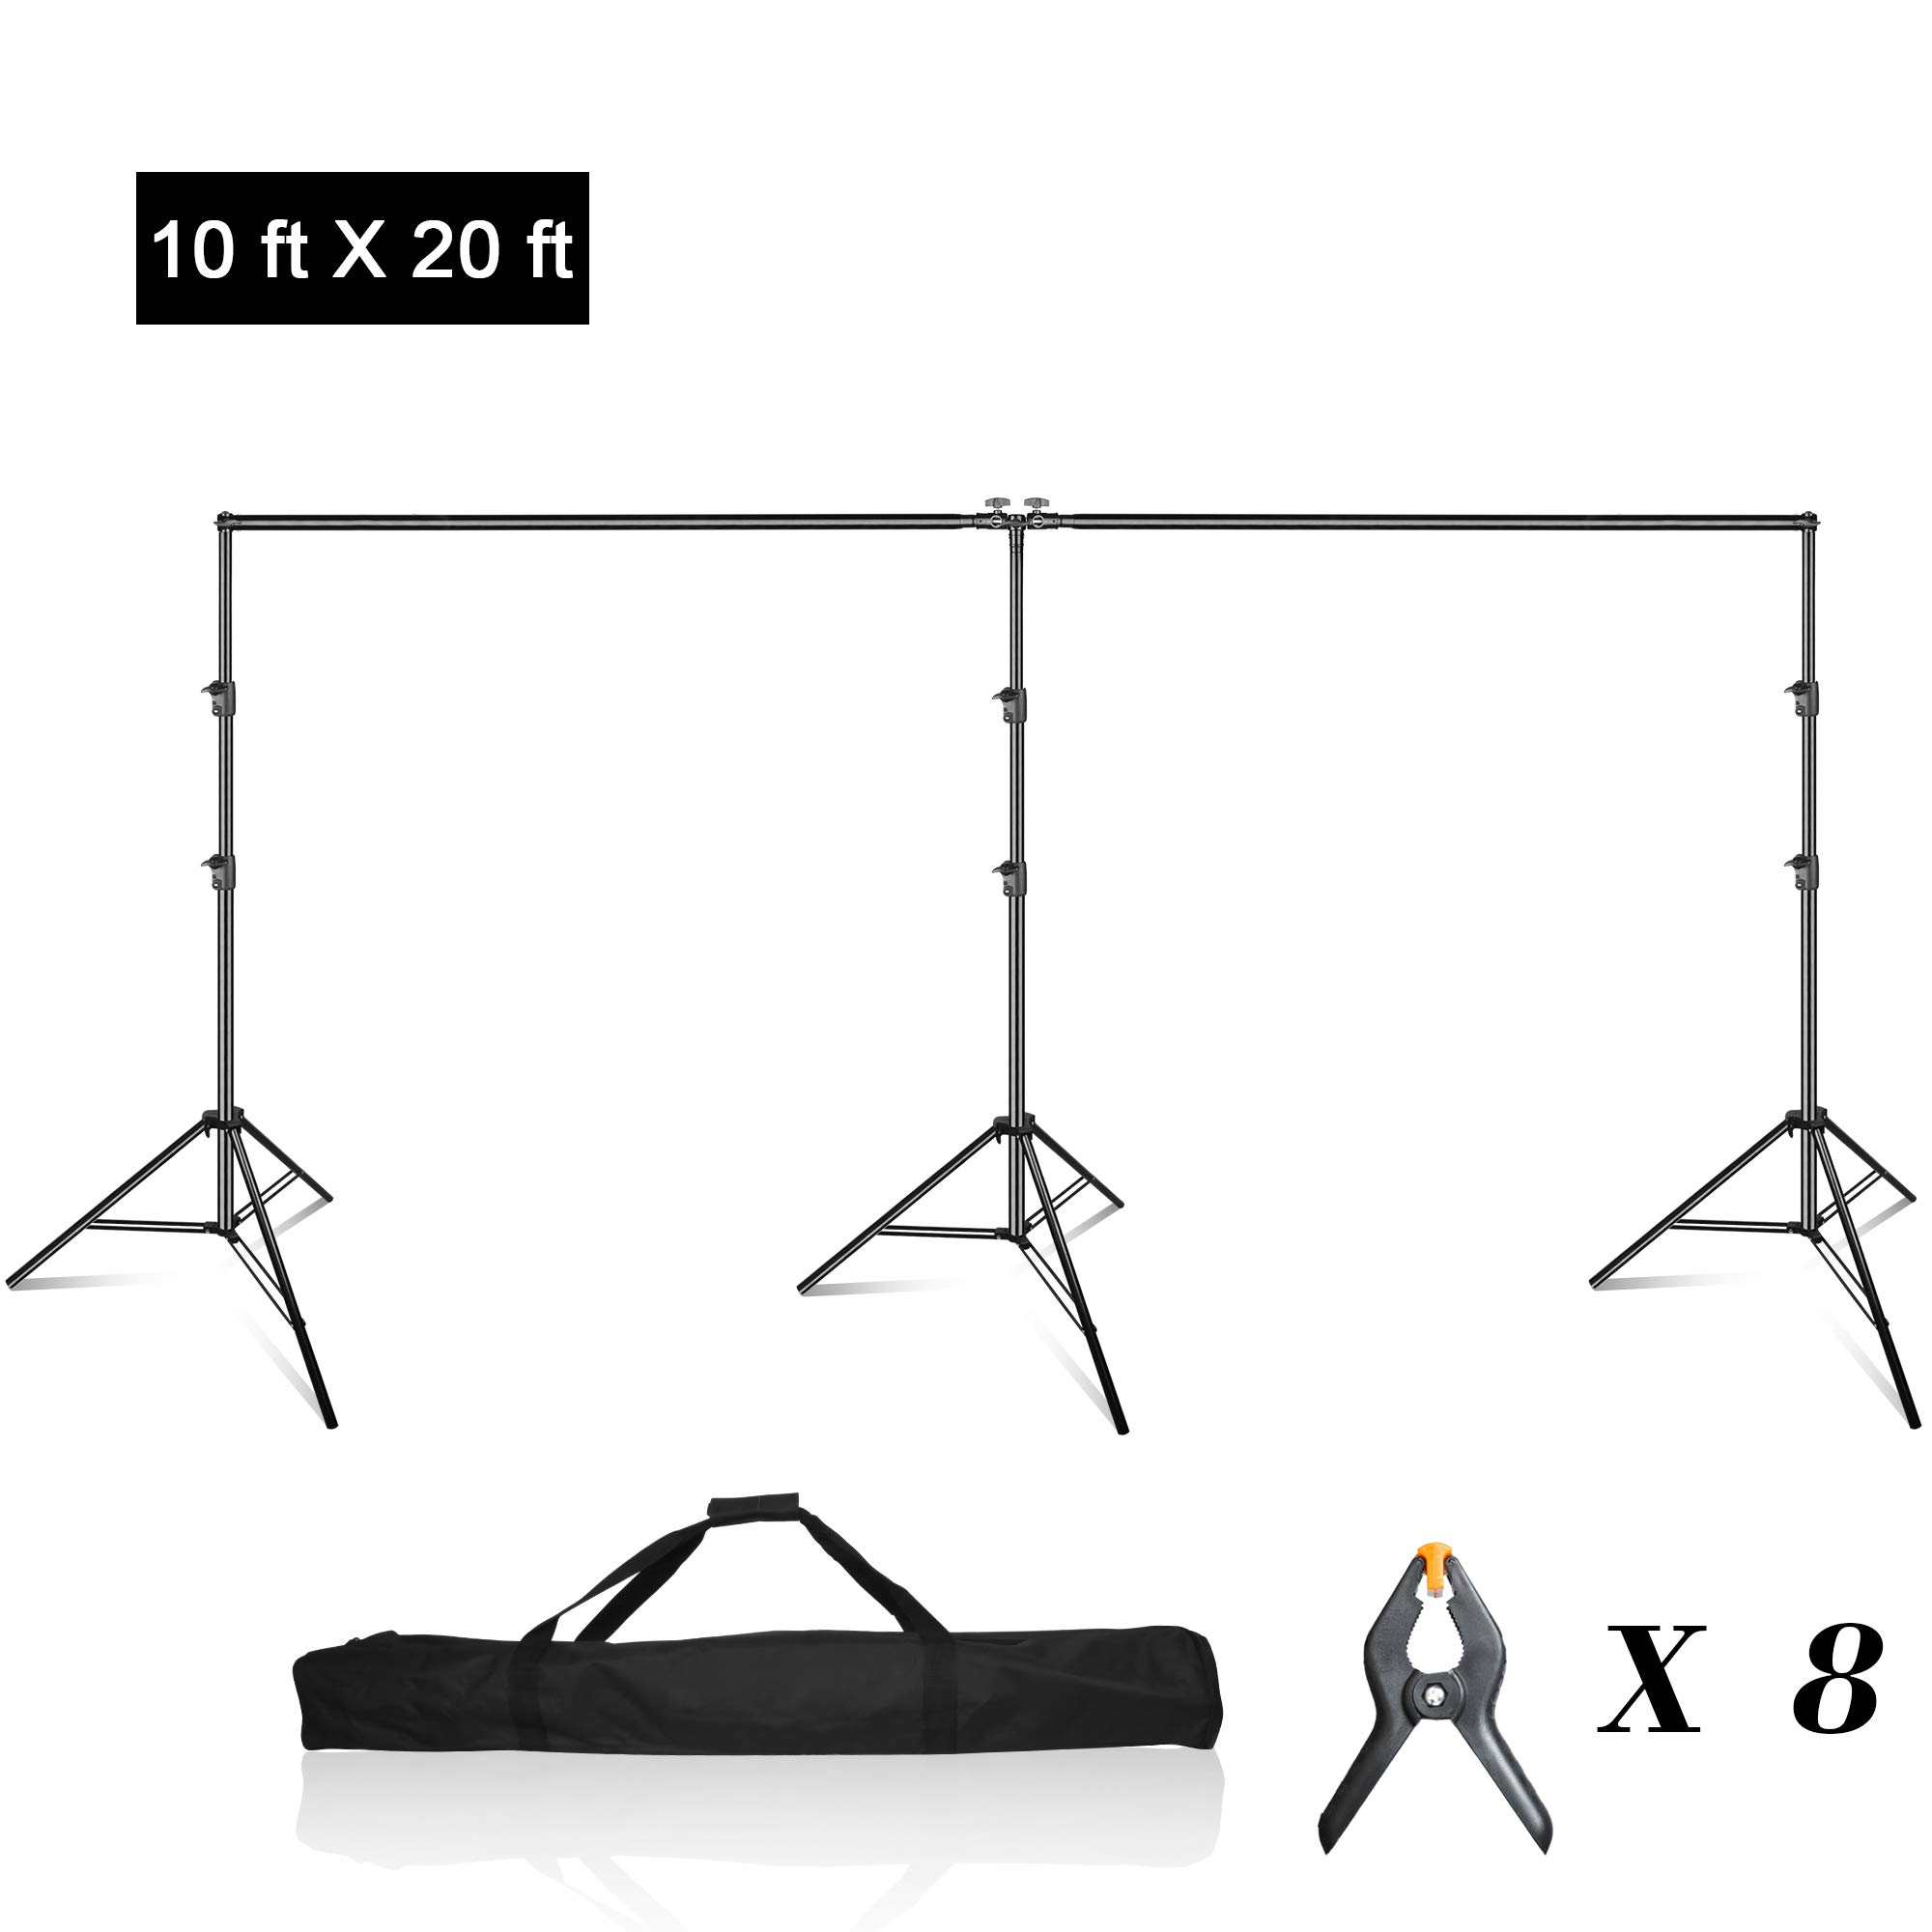 Emart Photo Video Studio 20 ft Wide 10 ft Tall Adjustable Heavy Duty Photography Backdrop Stand, Background Support System Kit with 3 Stands, 8 Spring Clamps, 1 Carrying Bag by EMART